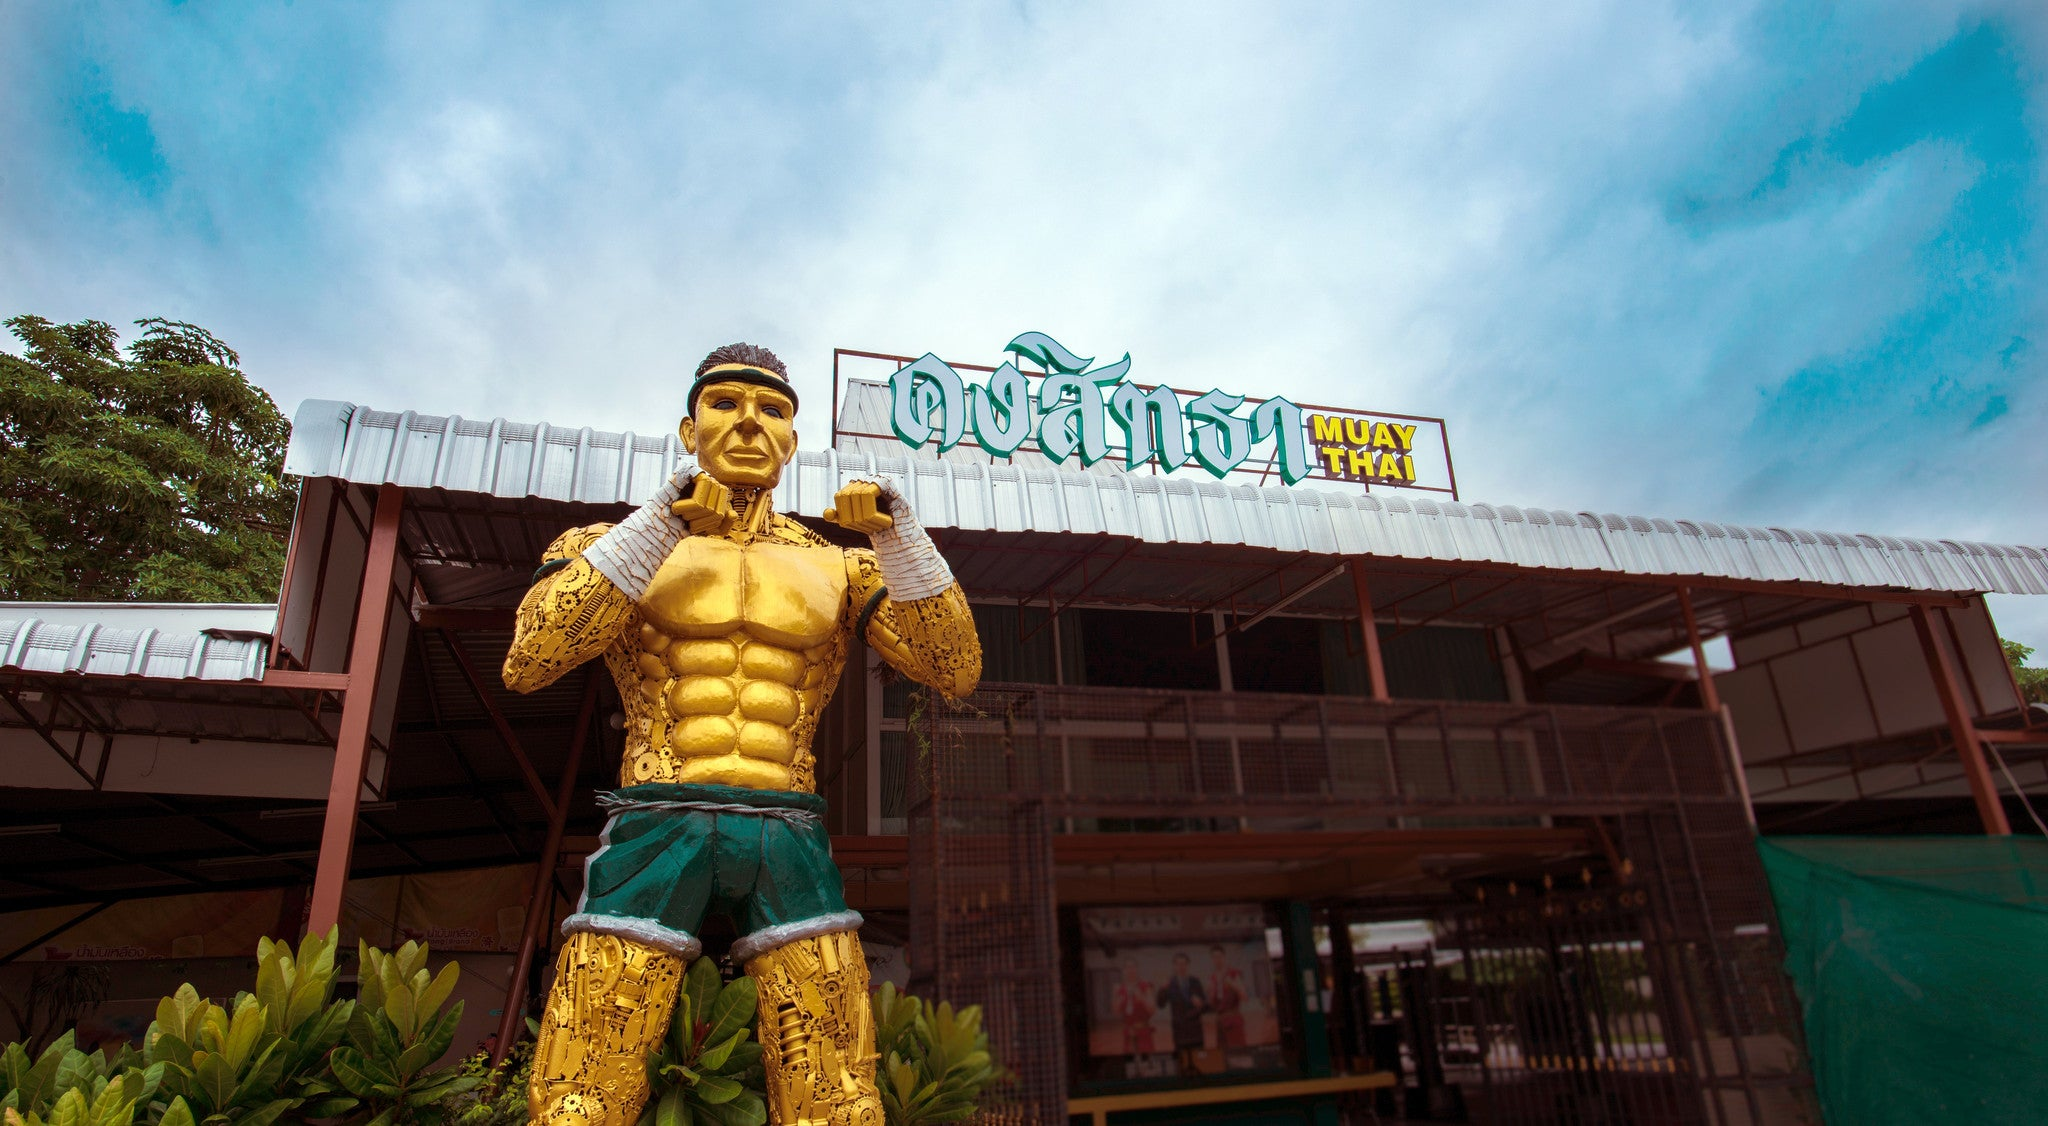 The Largest Bangkok Muay Thai Gym